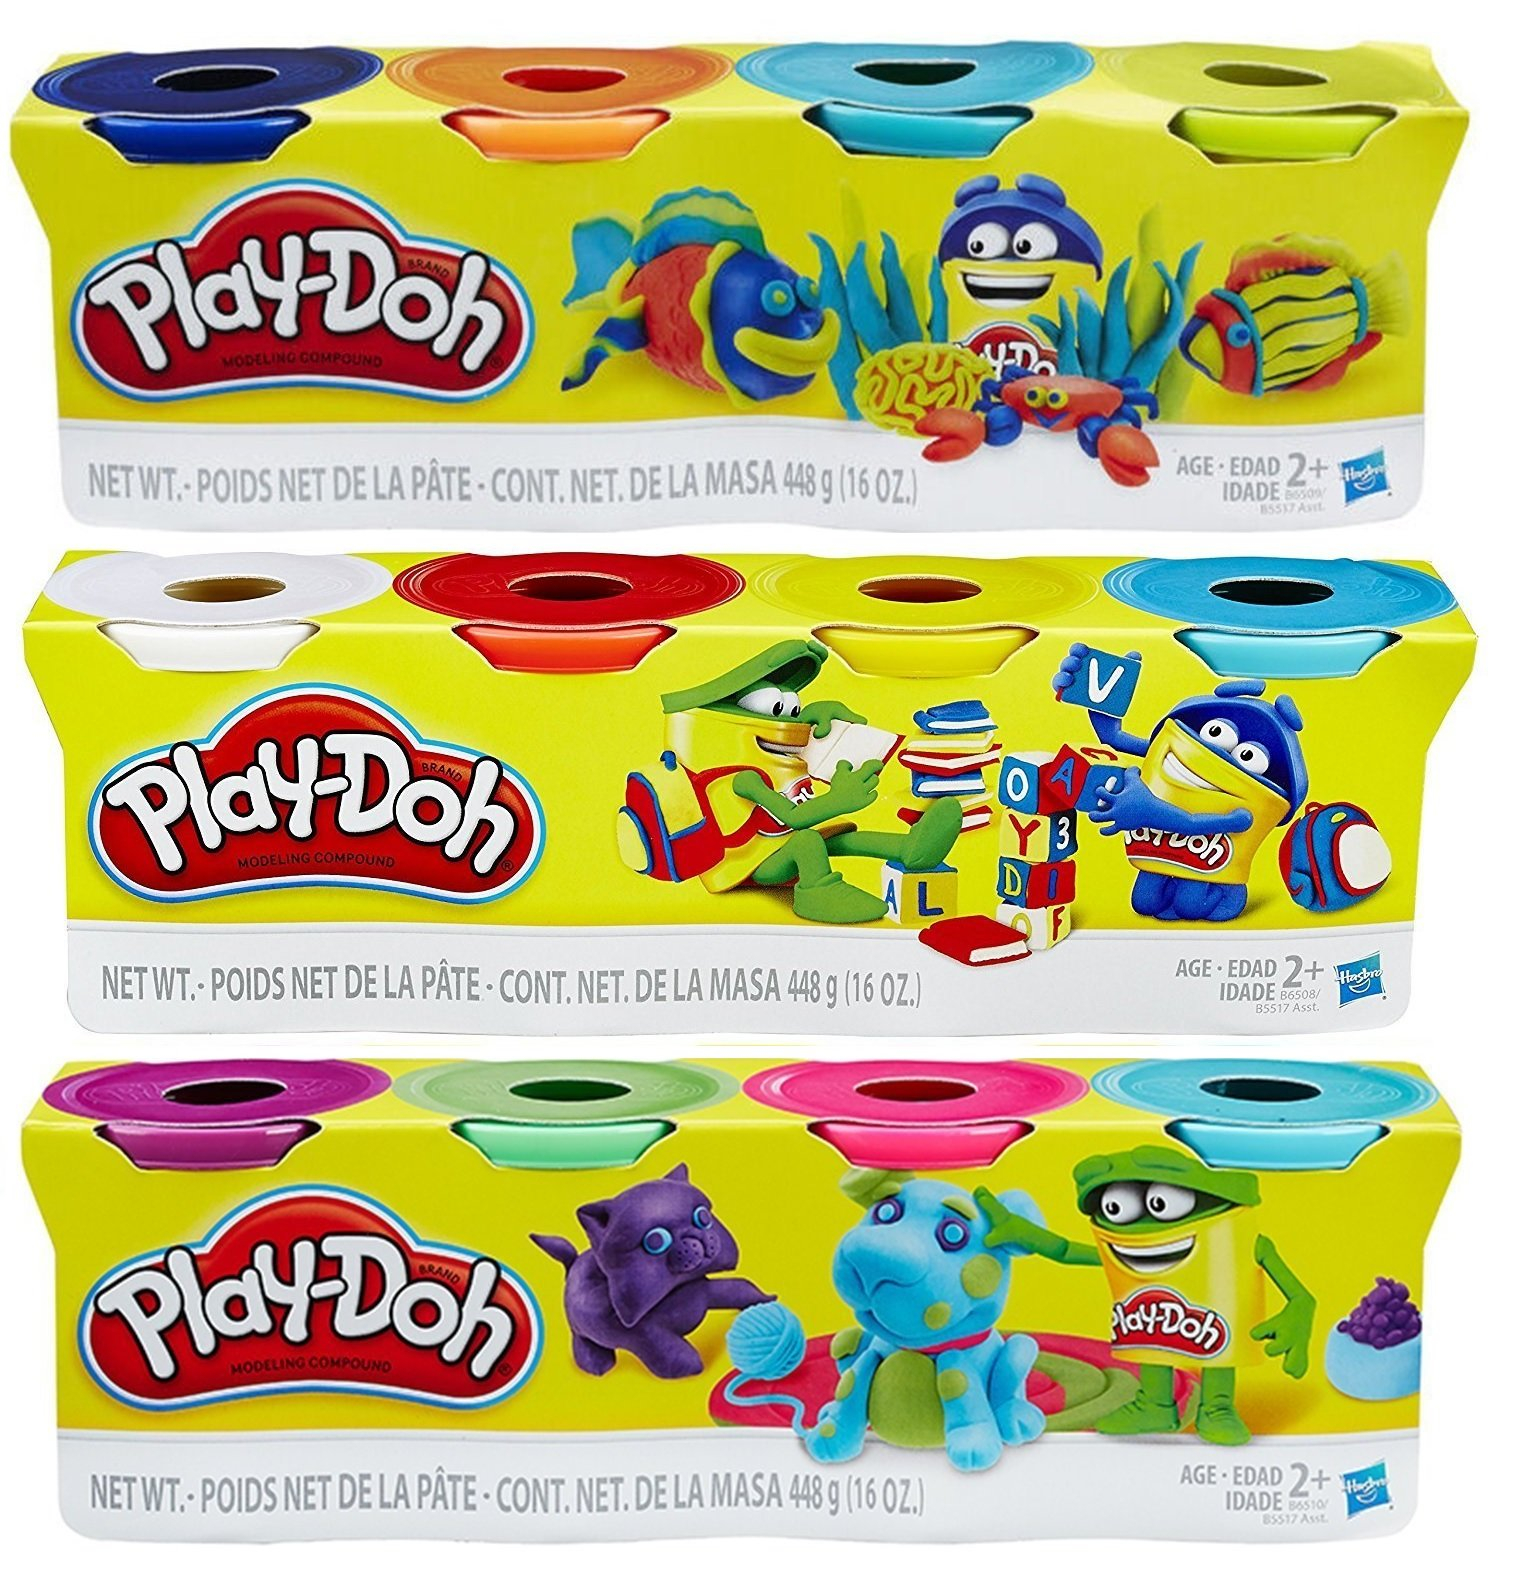 Play-Doh HASB5517BAMZ 4-Pack of Colors Gift Set Bundle (12 Cans-48 Oz)